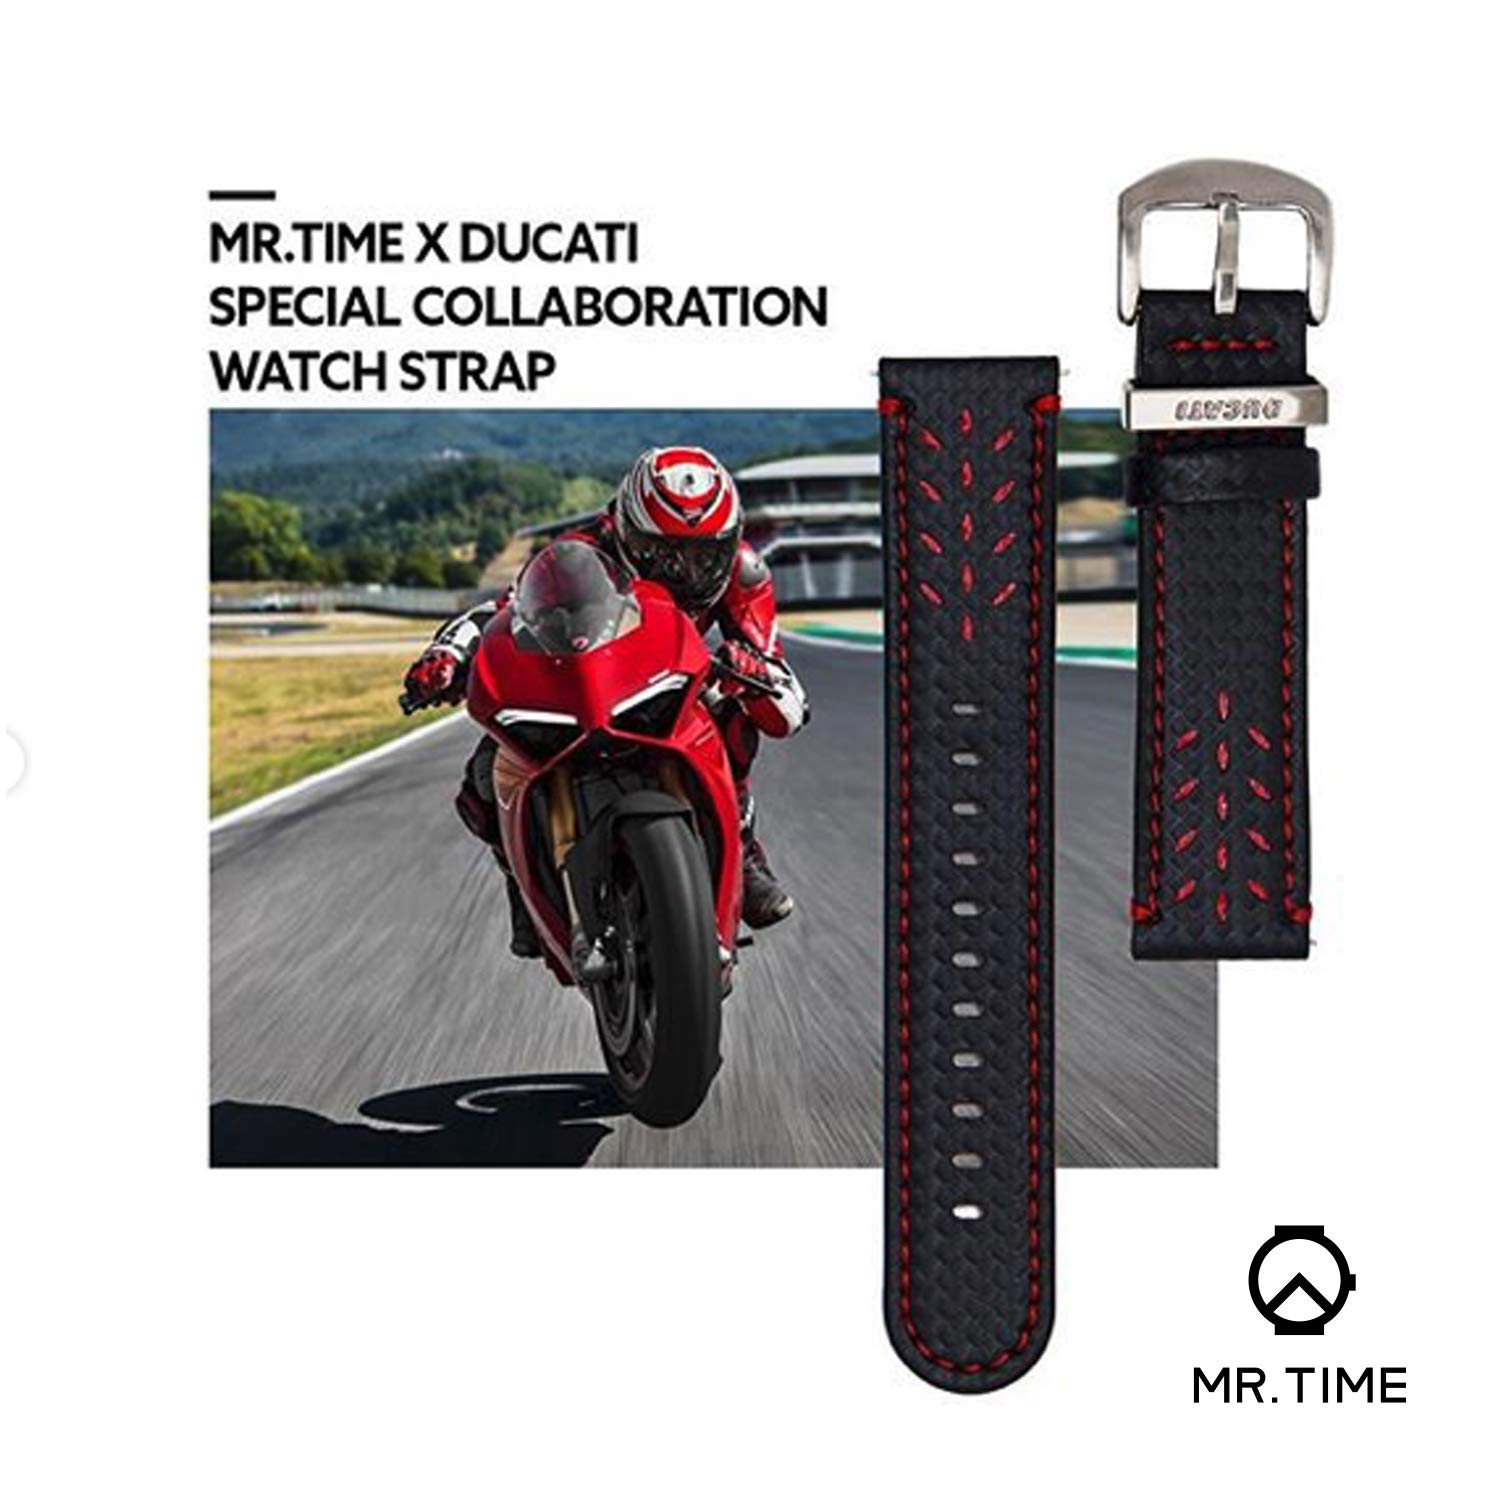 Mr. Time Smart Watch Band for Apple Watch 44mm 42mm, [Ducati Special Edition] Genuine Leather Sport Strap Replacement Bands Compatible for Apple Watch Series 4, 3, 2, 1 - Black by MR. TIME (Image #4)